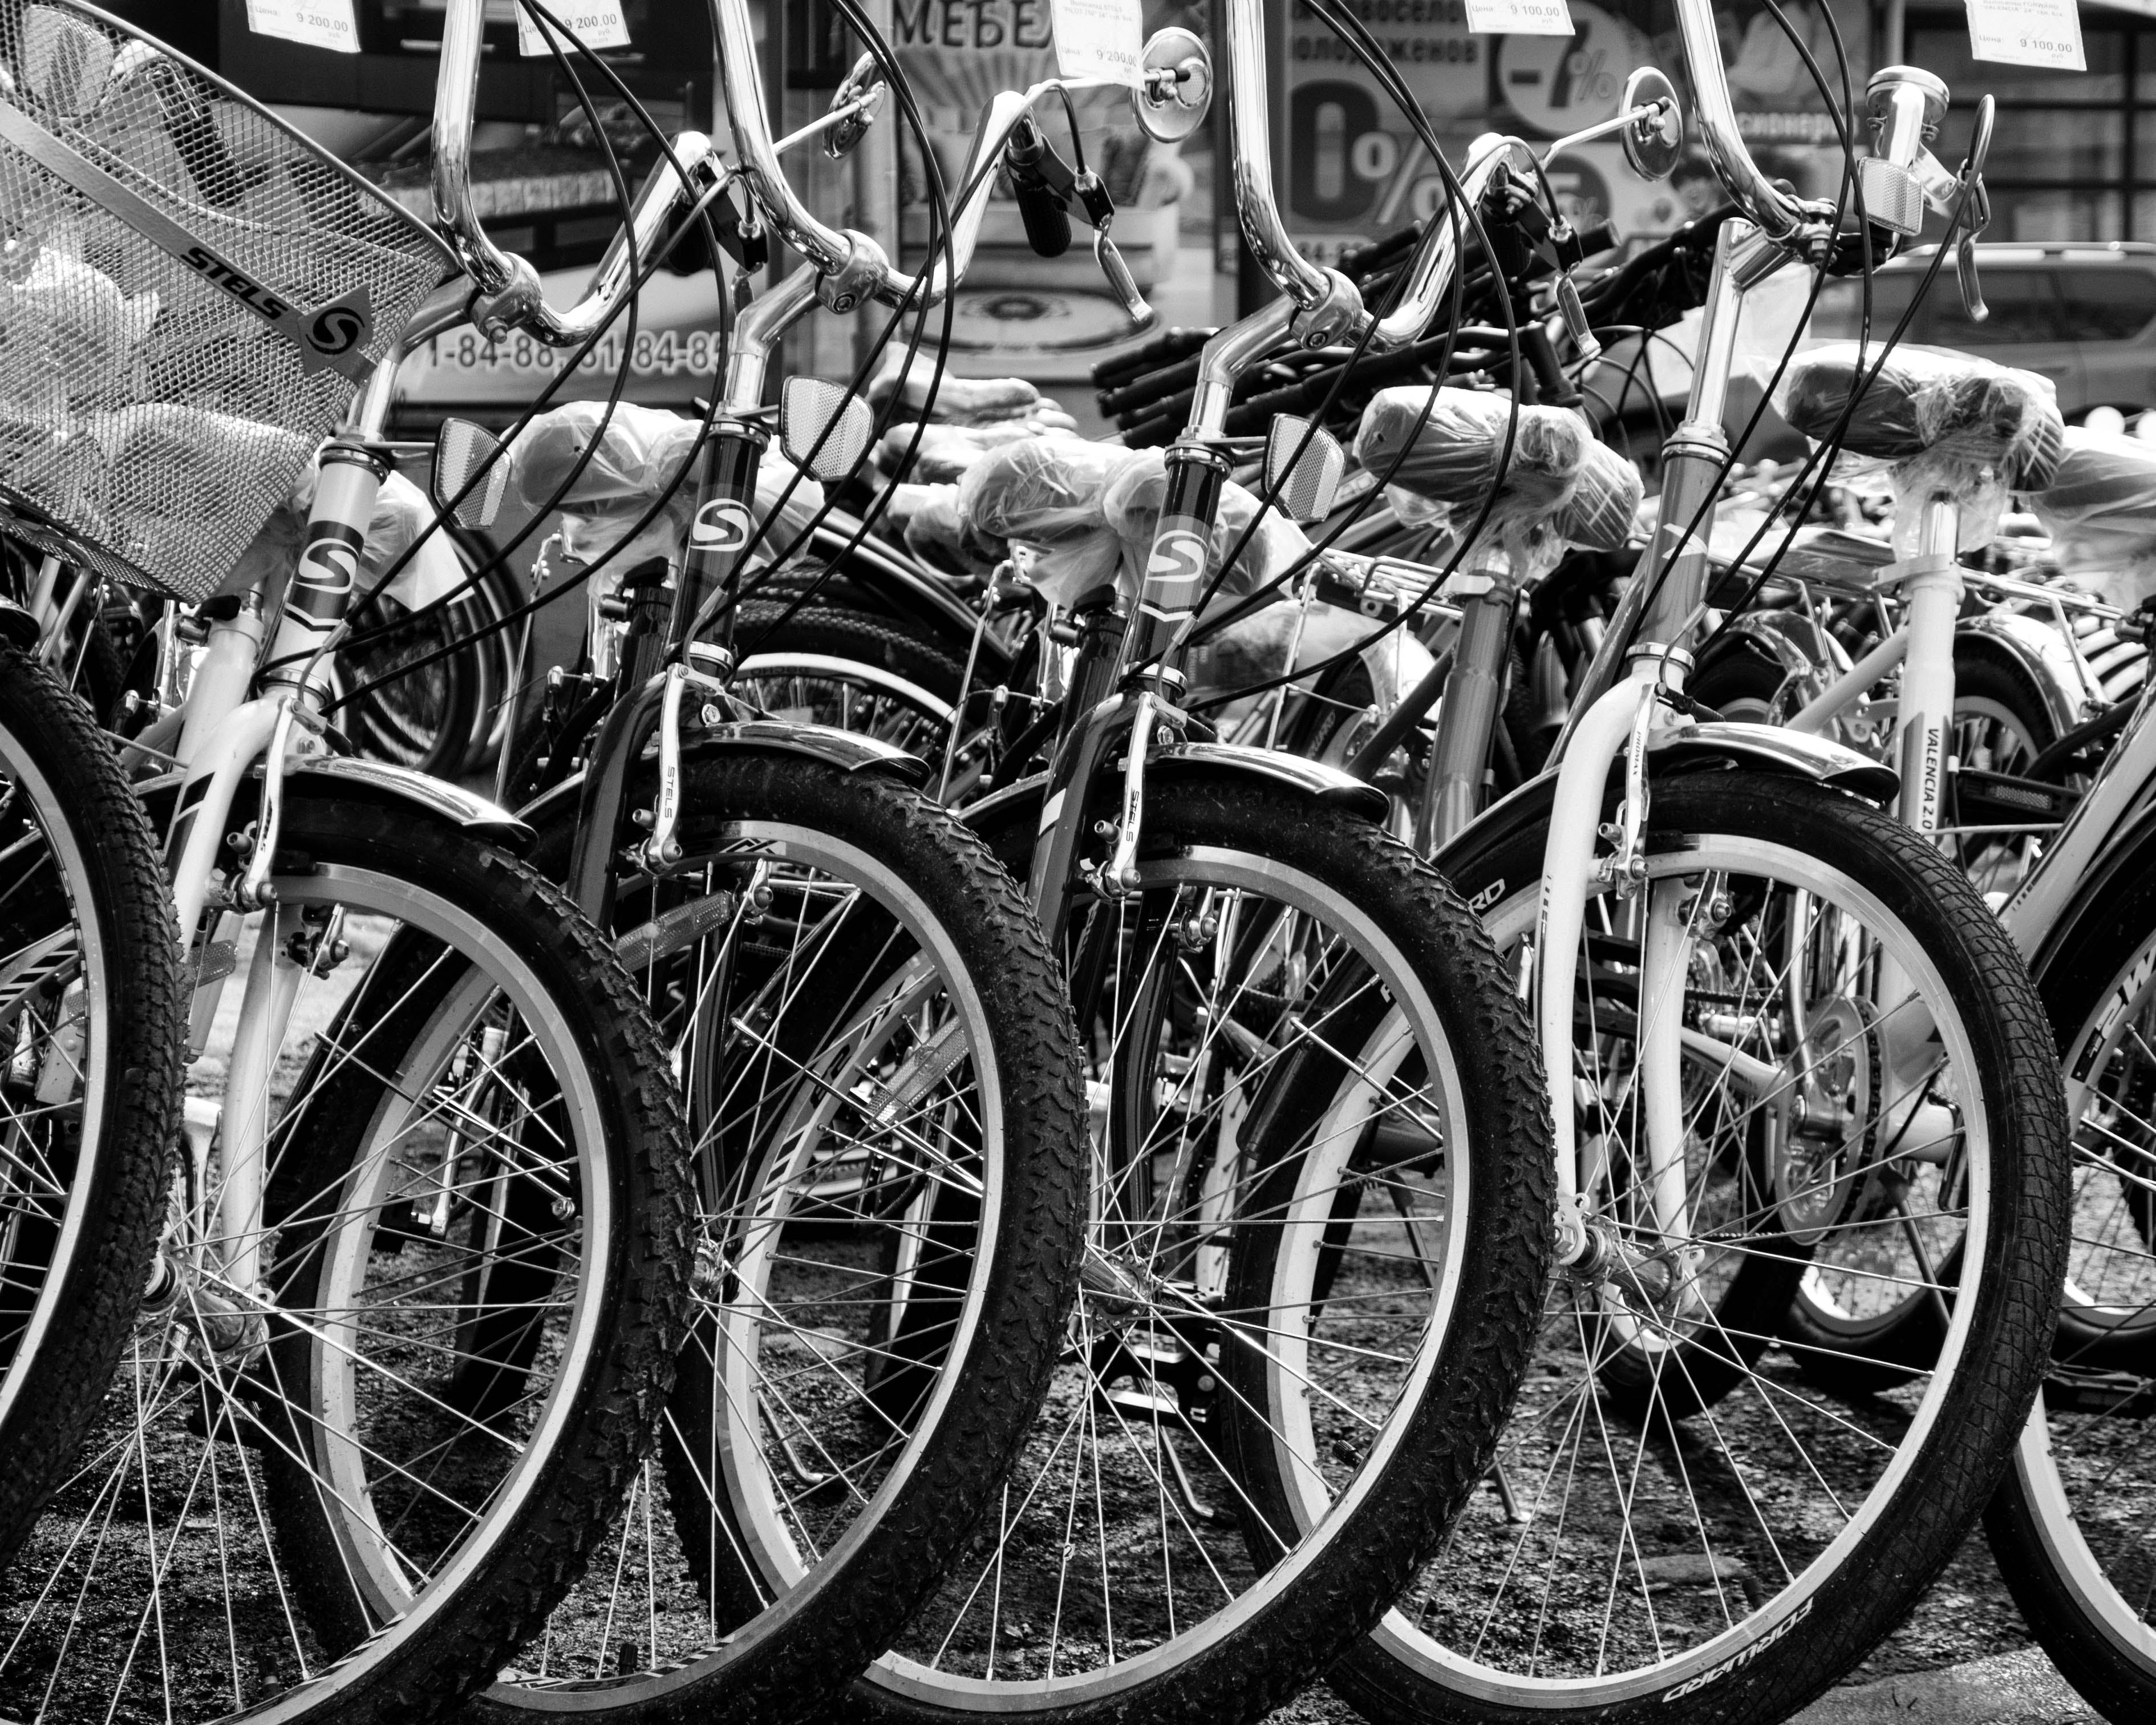 Grayscale Photo of Bicycles